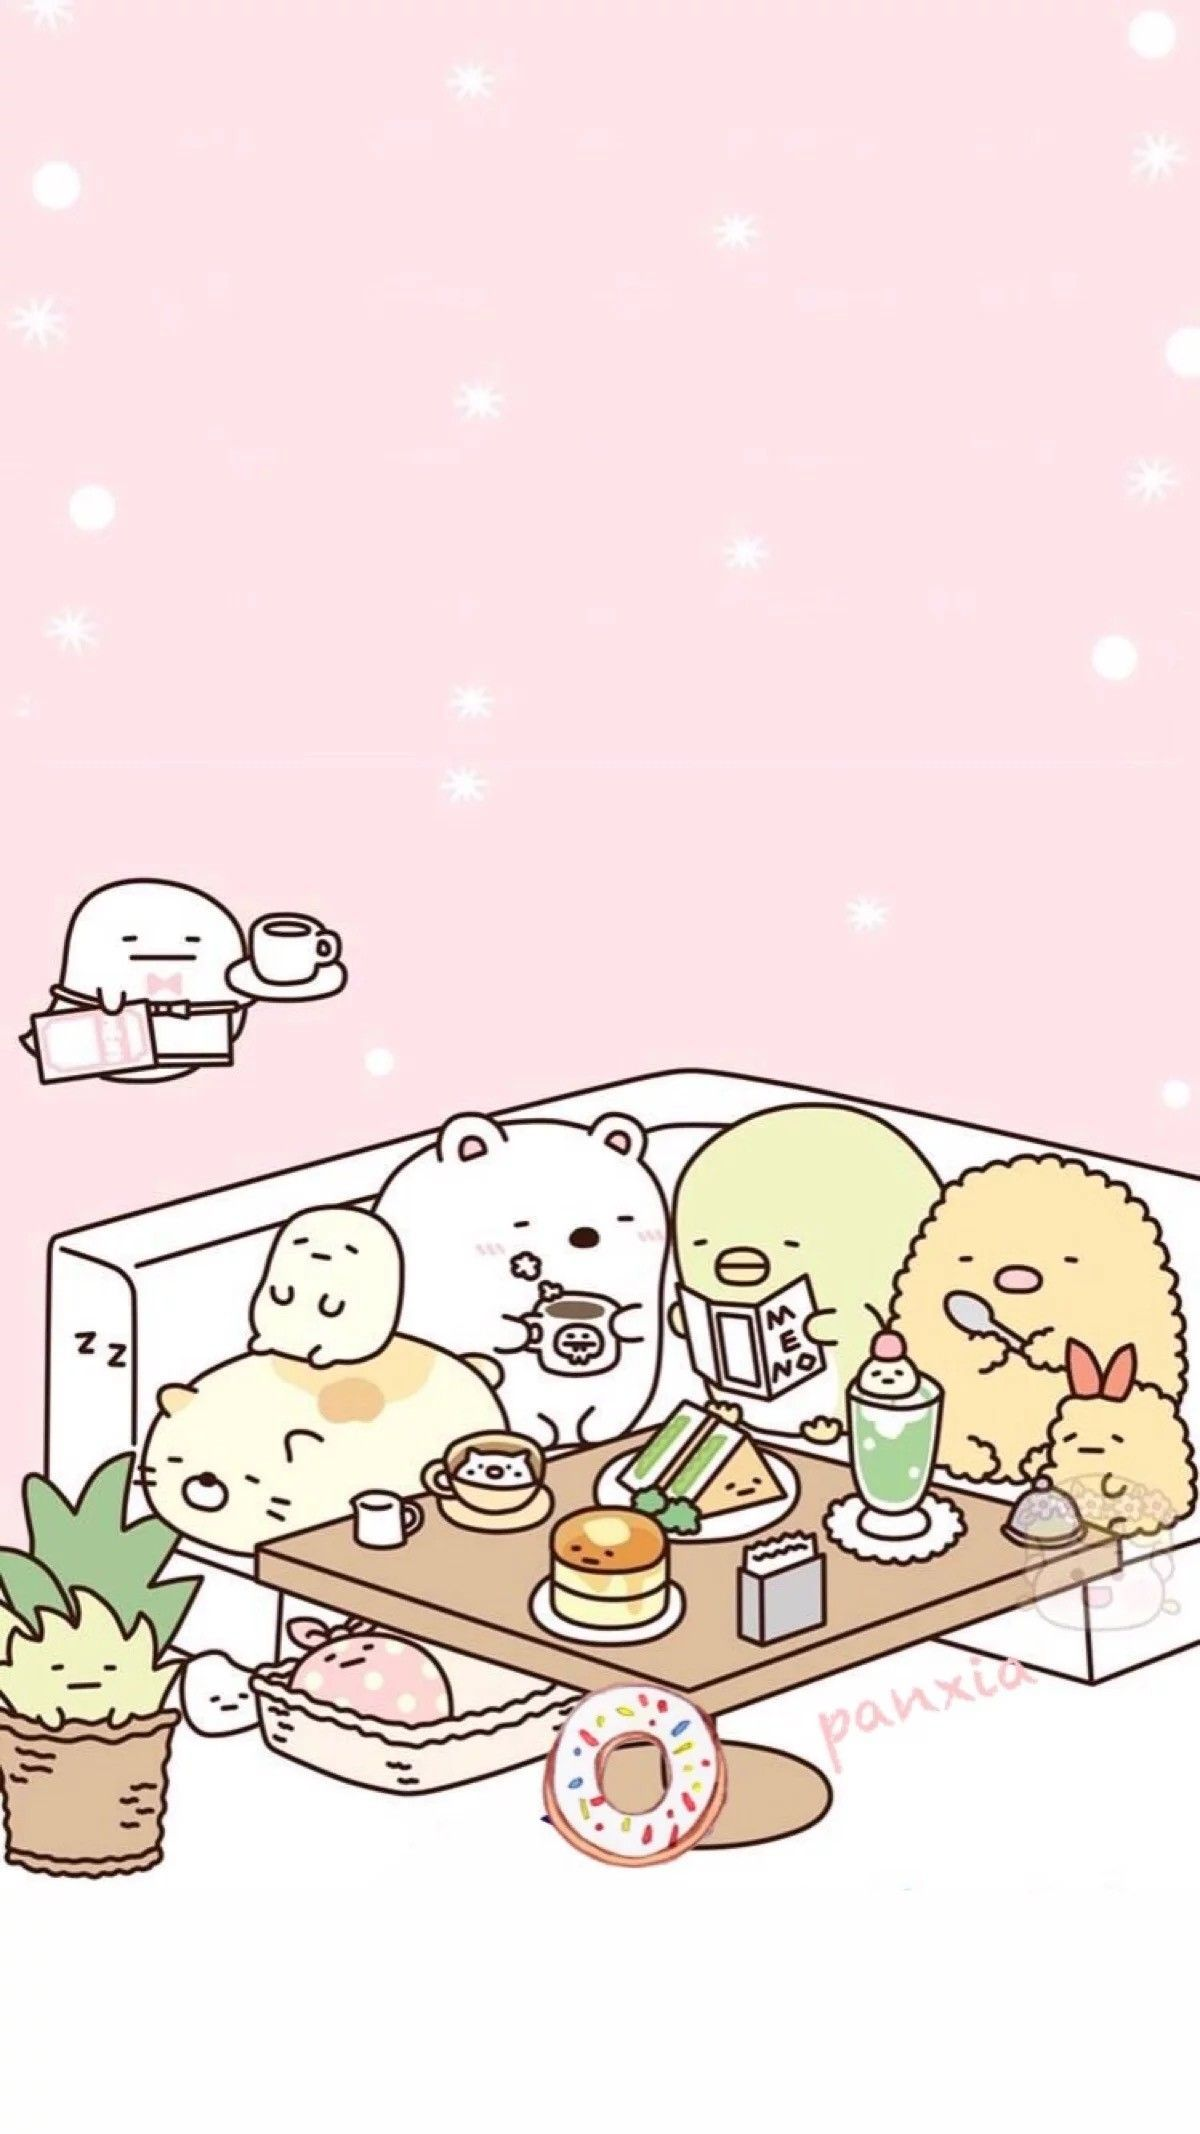 Awesome Sanrio iPhone Wallpapers - WallpaperAccess